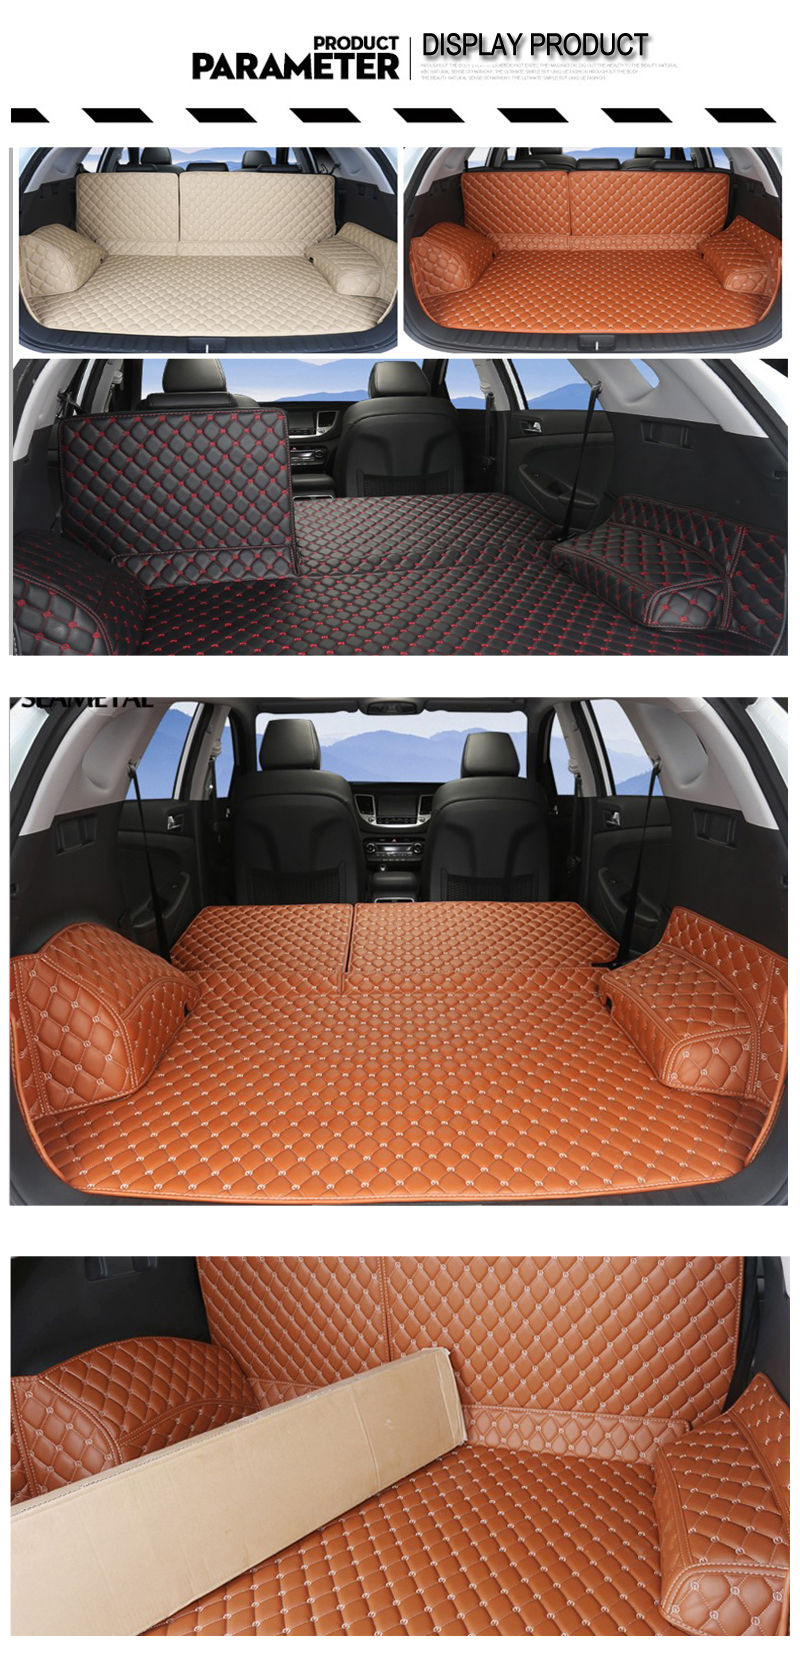 5 Cargo Liner For Hyundai Tucson 2018 2017 2016 TL 3 Car Floor Trunk Carpet Rugs Mats Automobile Accessories Car-styling Mat Rug